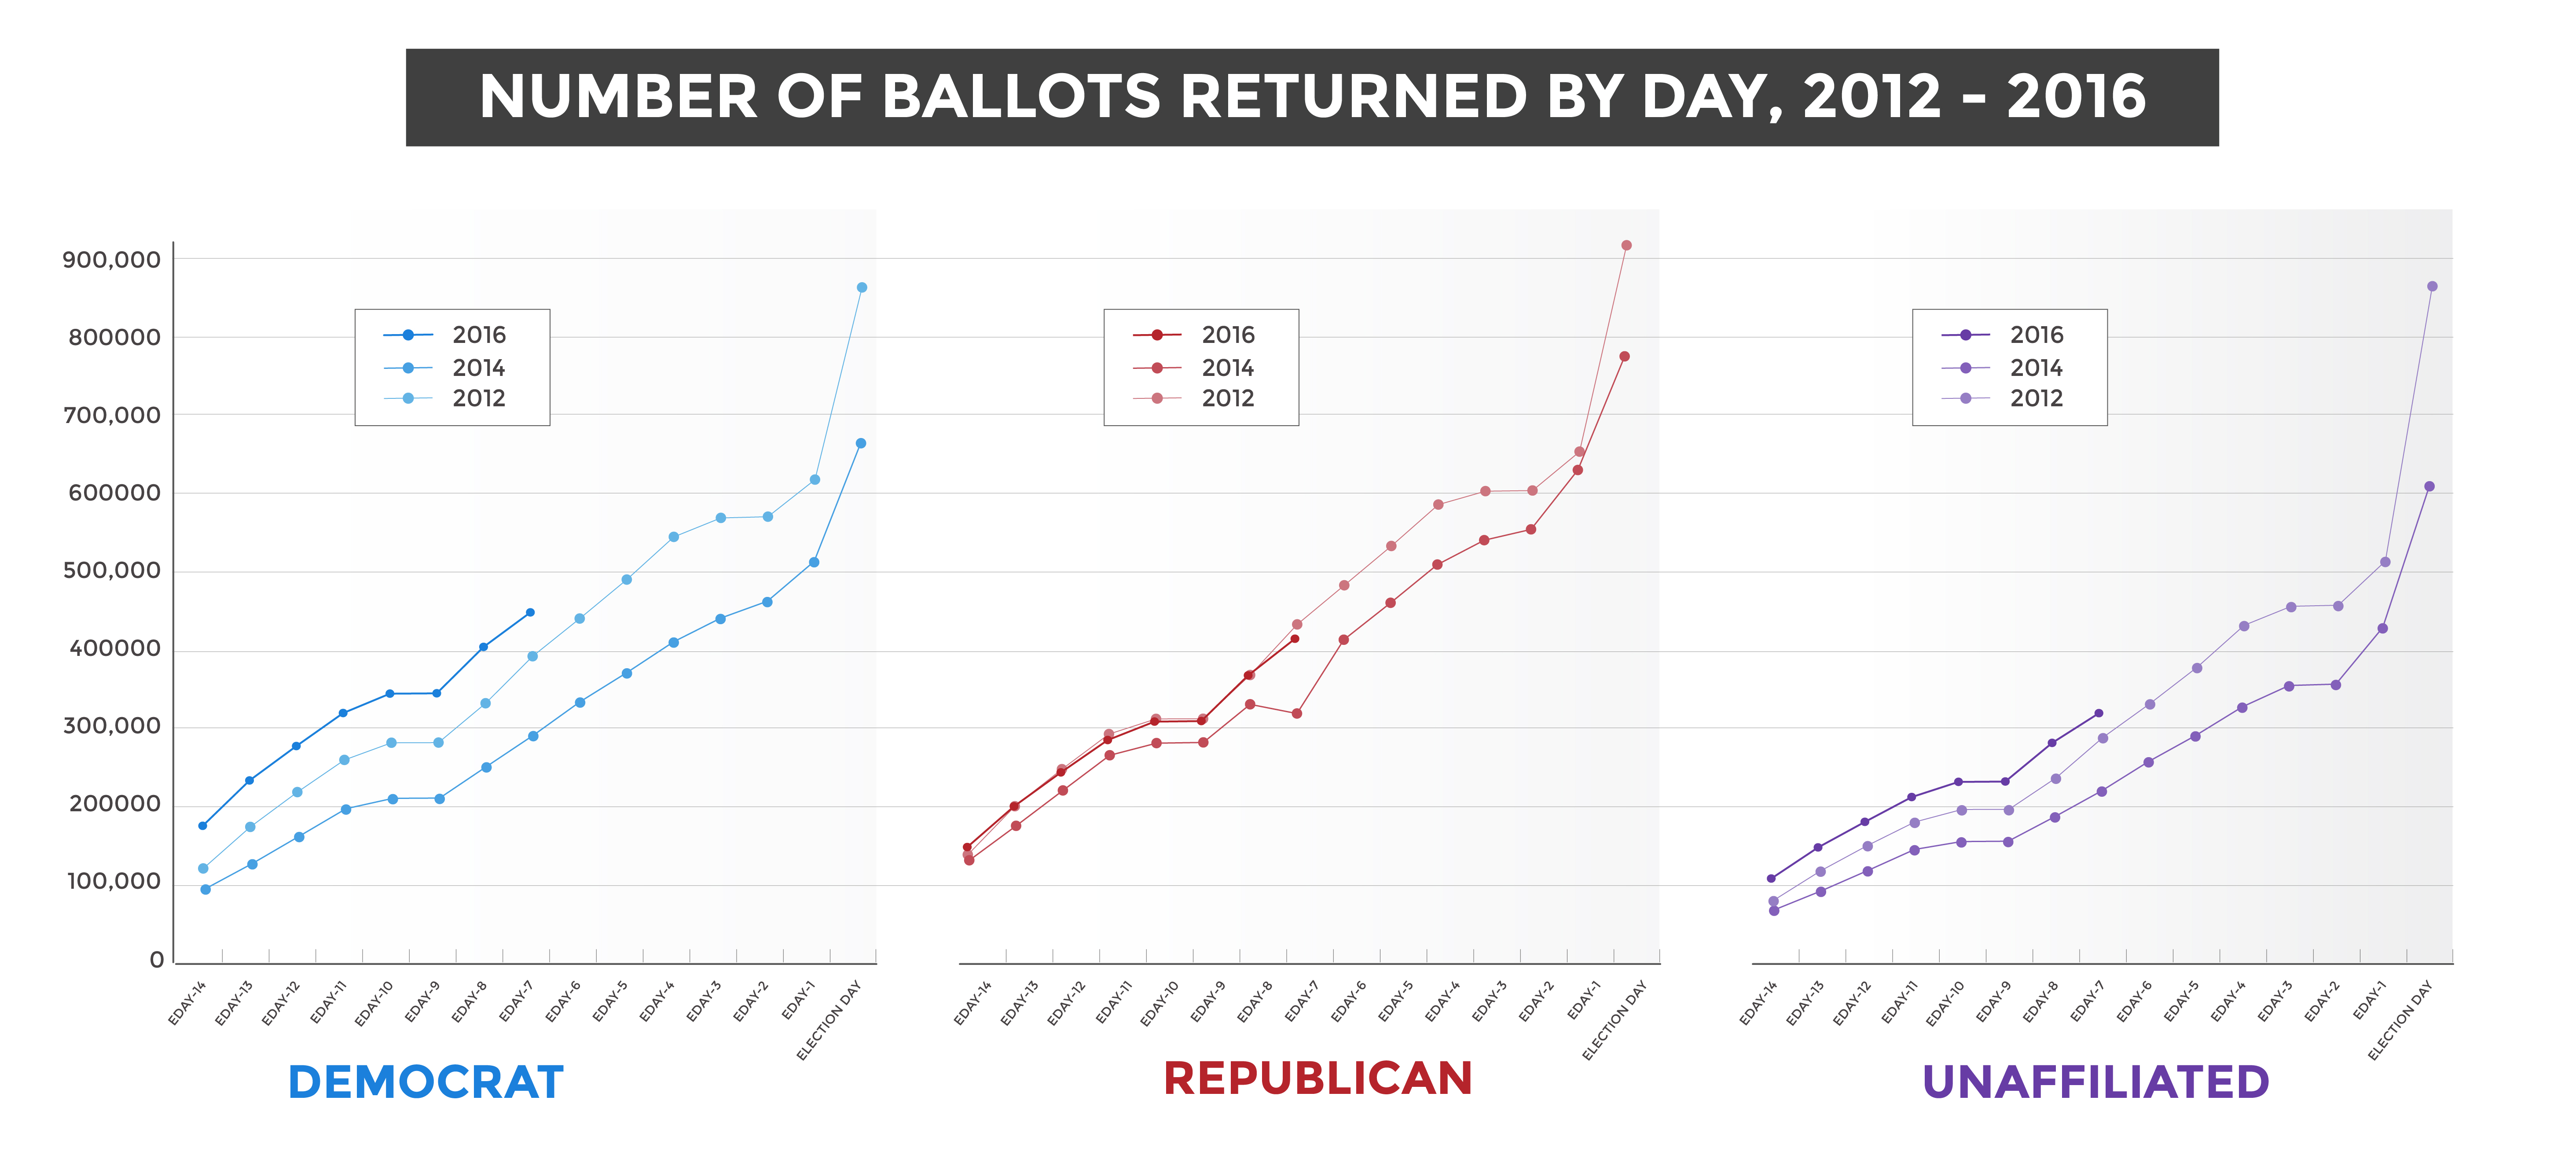 Ballot returns by day by party.